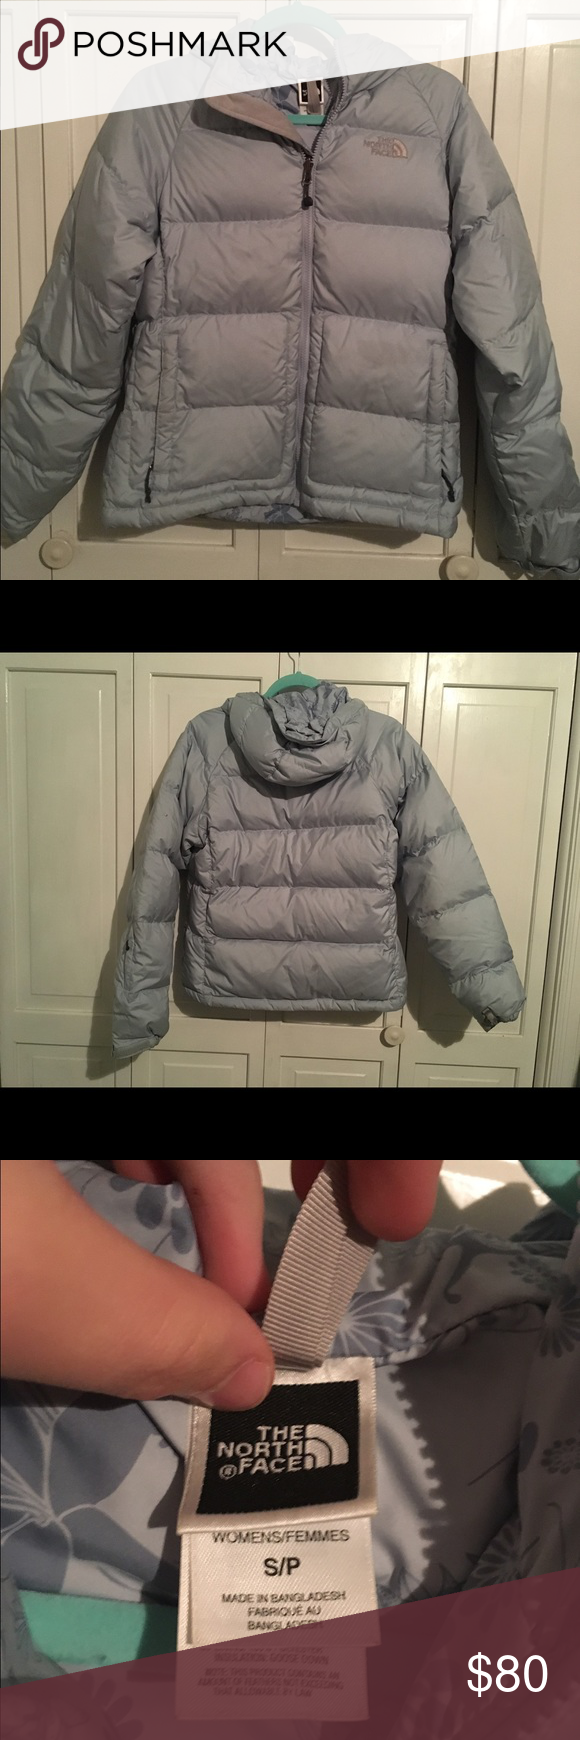 d430103ad6 ... wholesale north face down jacket this size small sky blue down jacket  by north face is